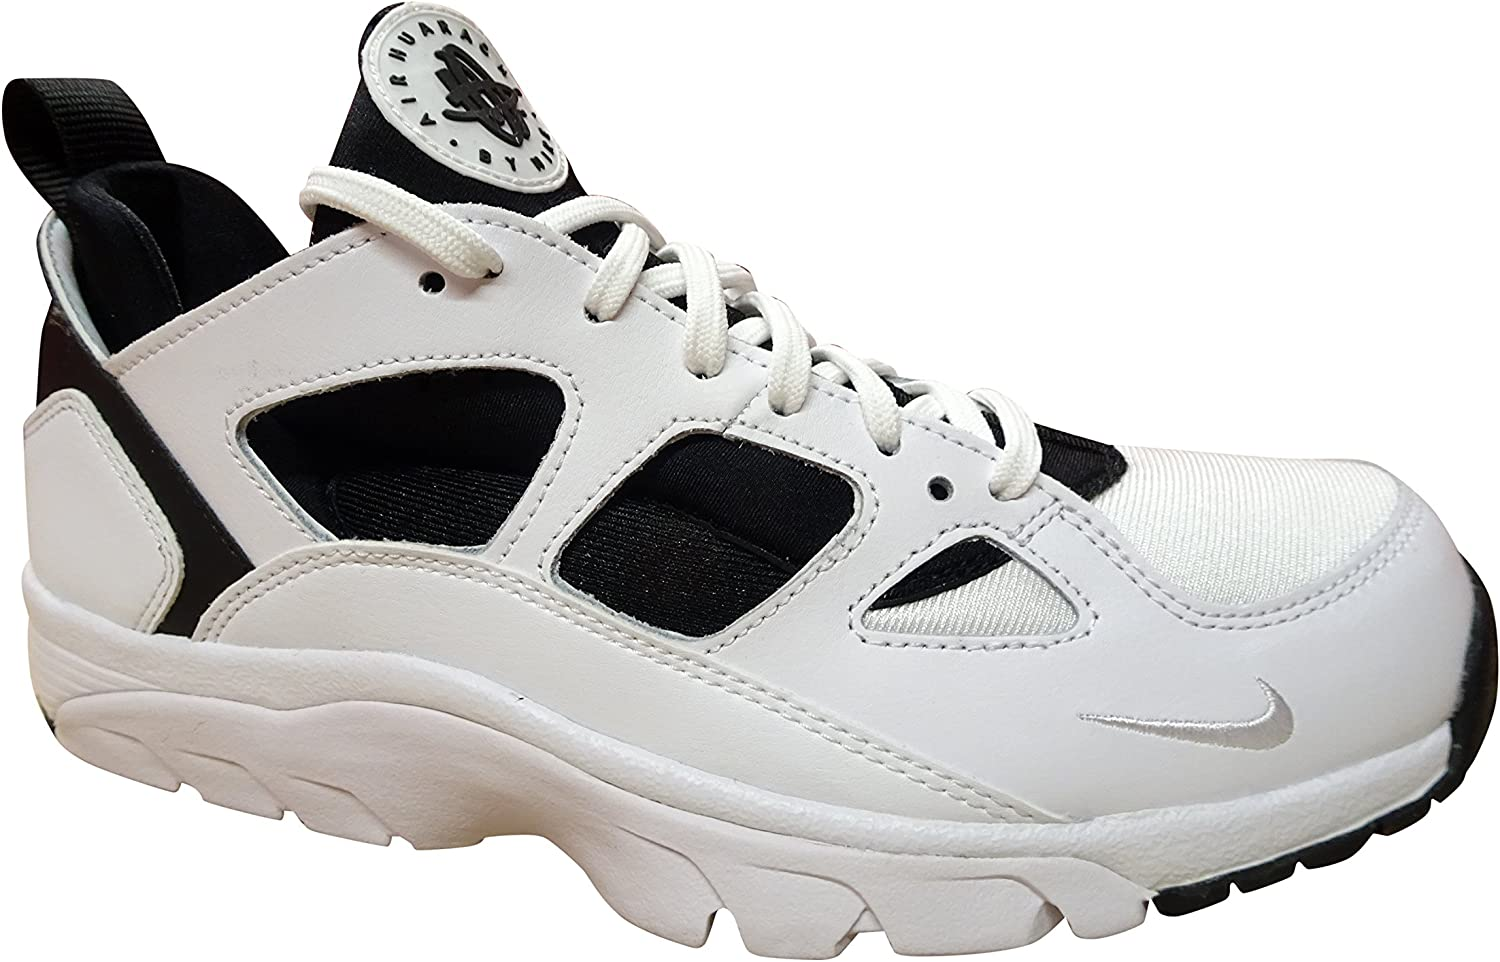 Nike Air Trainer Huarache Low, Men's Trainers